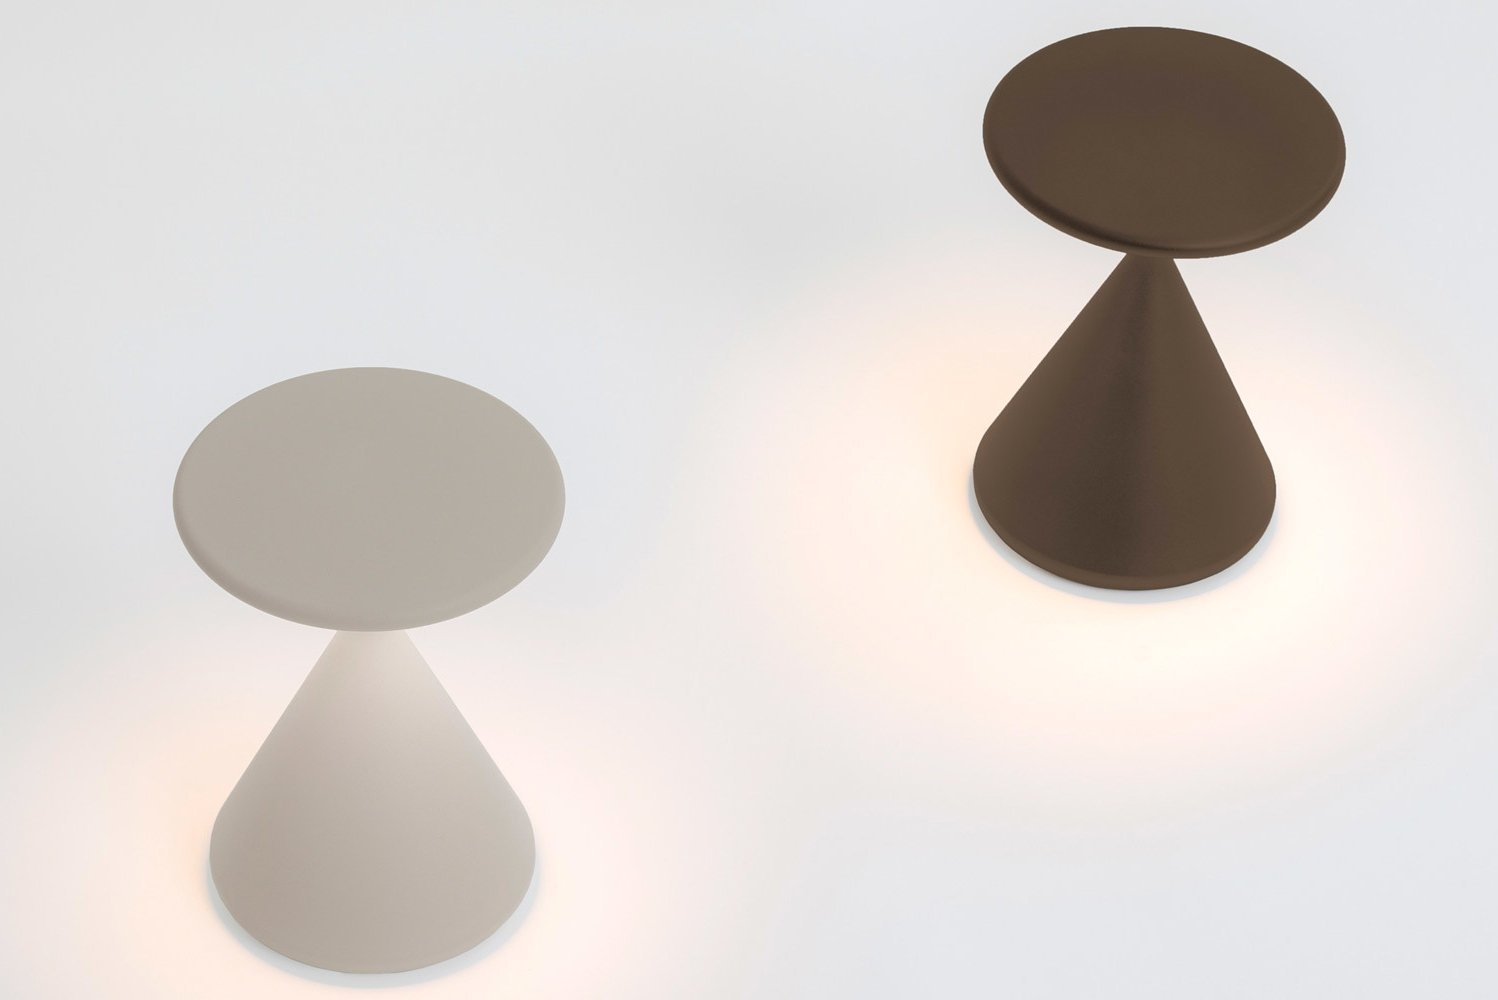 The lamp translates the traditional black and white spice shakers into 21st-century lighting.